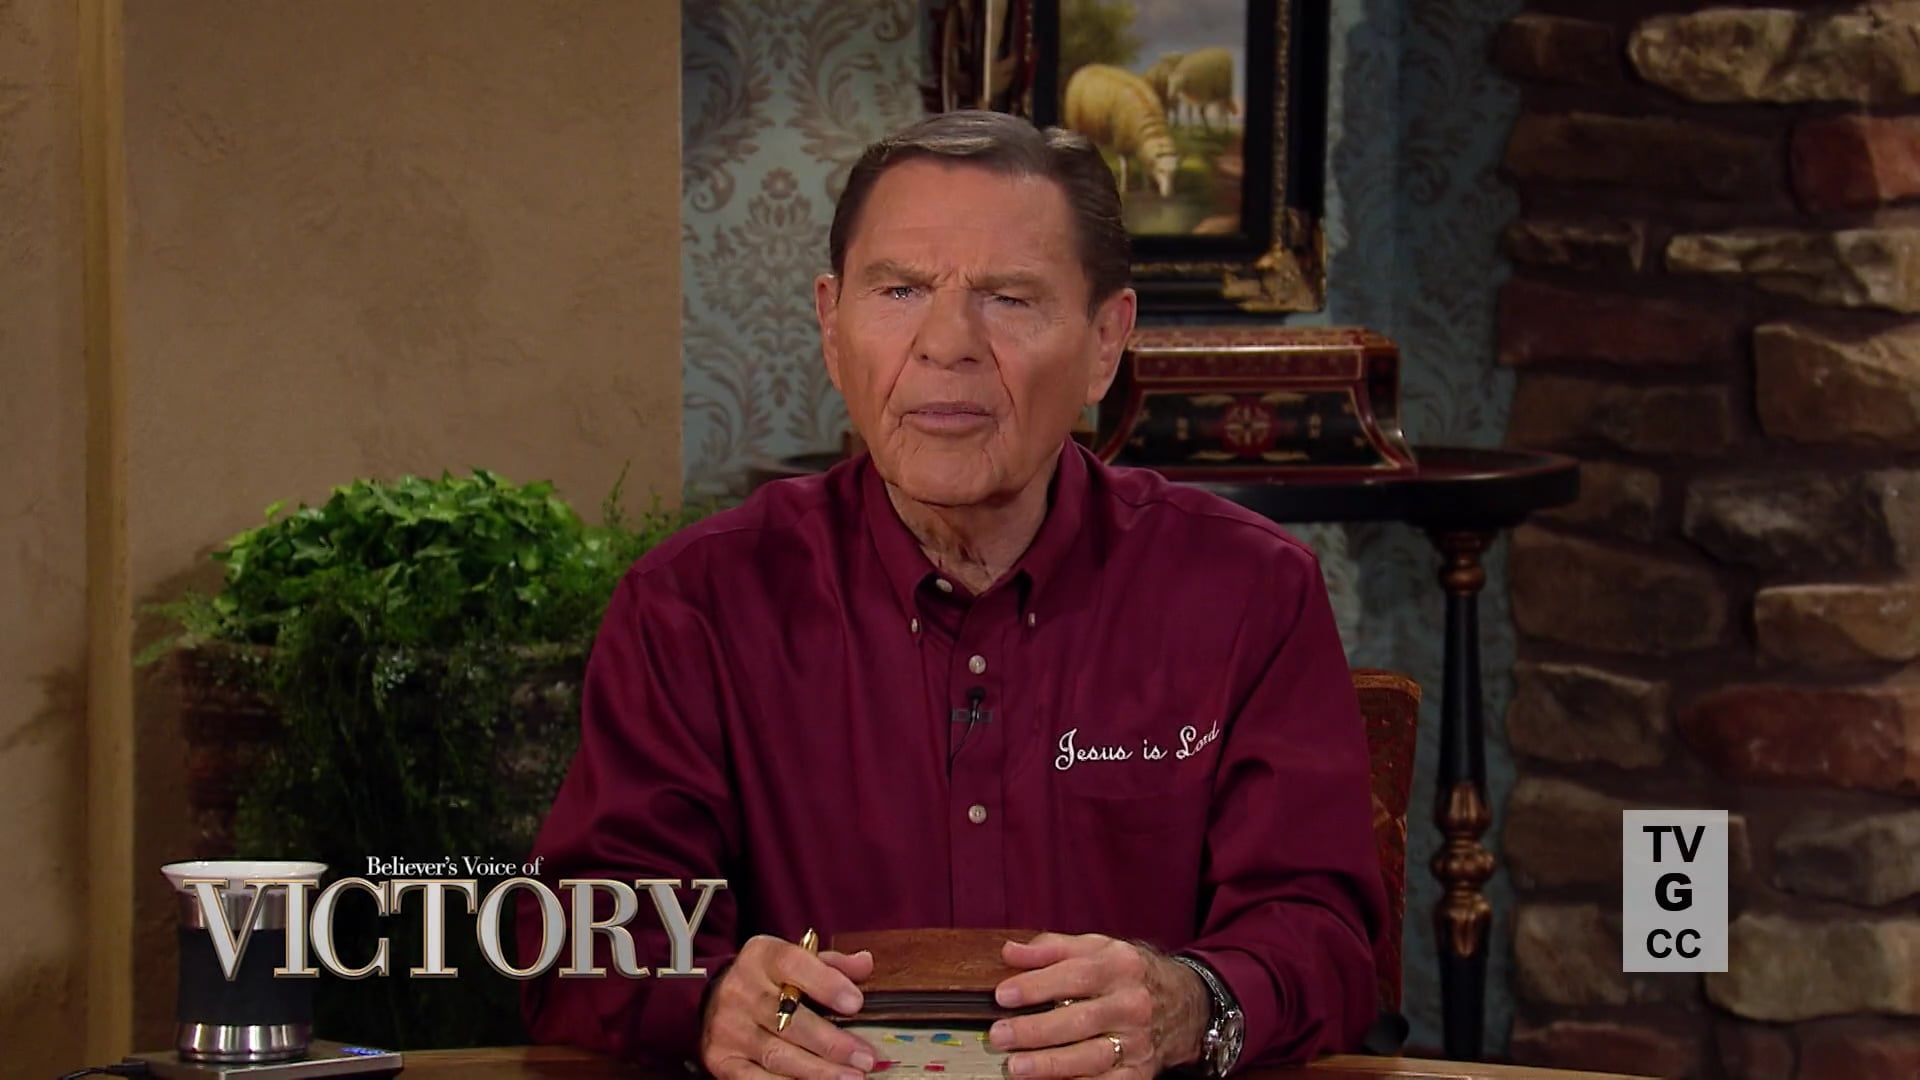 You have authority as a believer! Watch Believer's Voice of Victory as Kenneth Copeland joins Mark and Trina Hankins for a powerful discussion about how the spirit of faith moves mountains by speaking words of victory—and not words of fear. Learn how to tell your mountain to move, and watch it disappear!